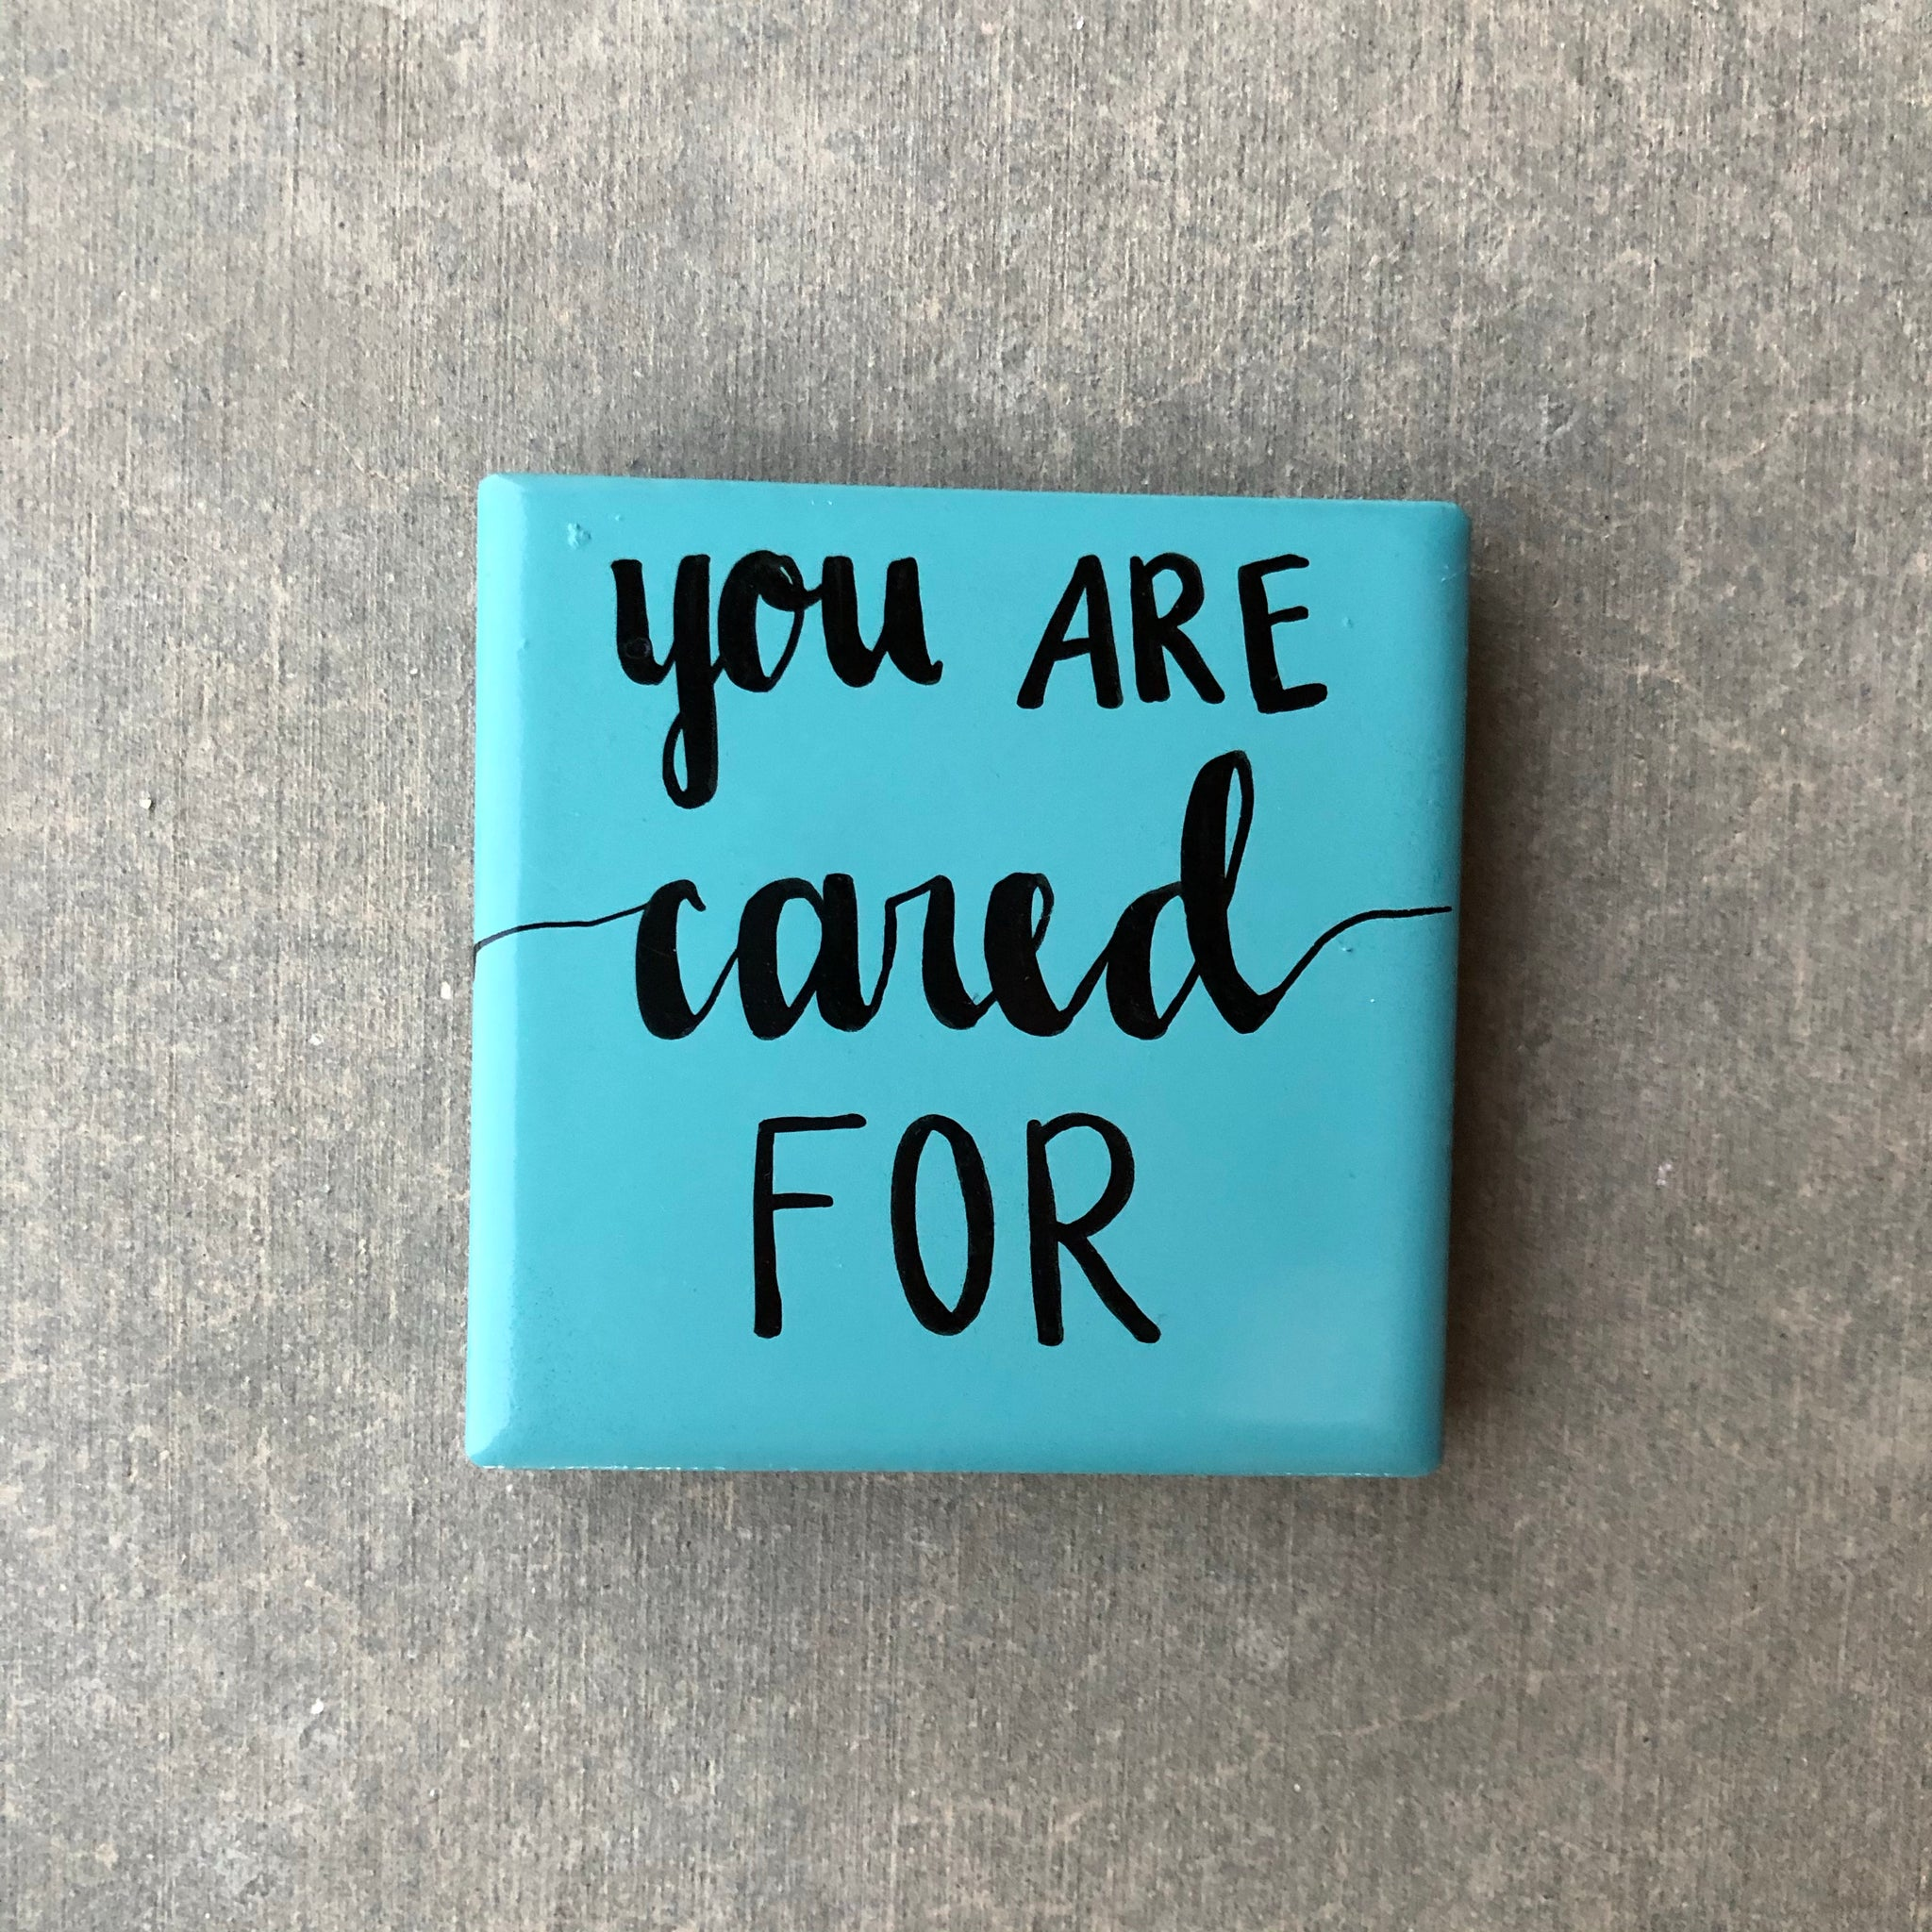 You are cared for. Strong magnet. Handmade art (: Gift Idea - Stationary decor!